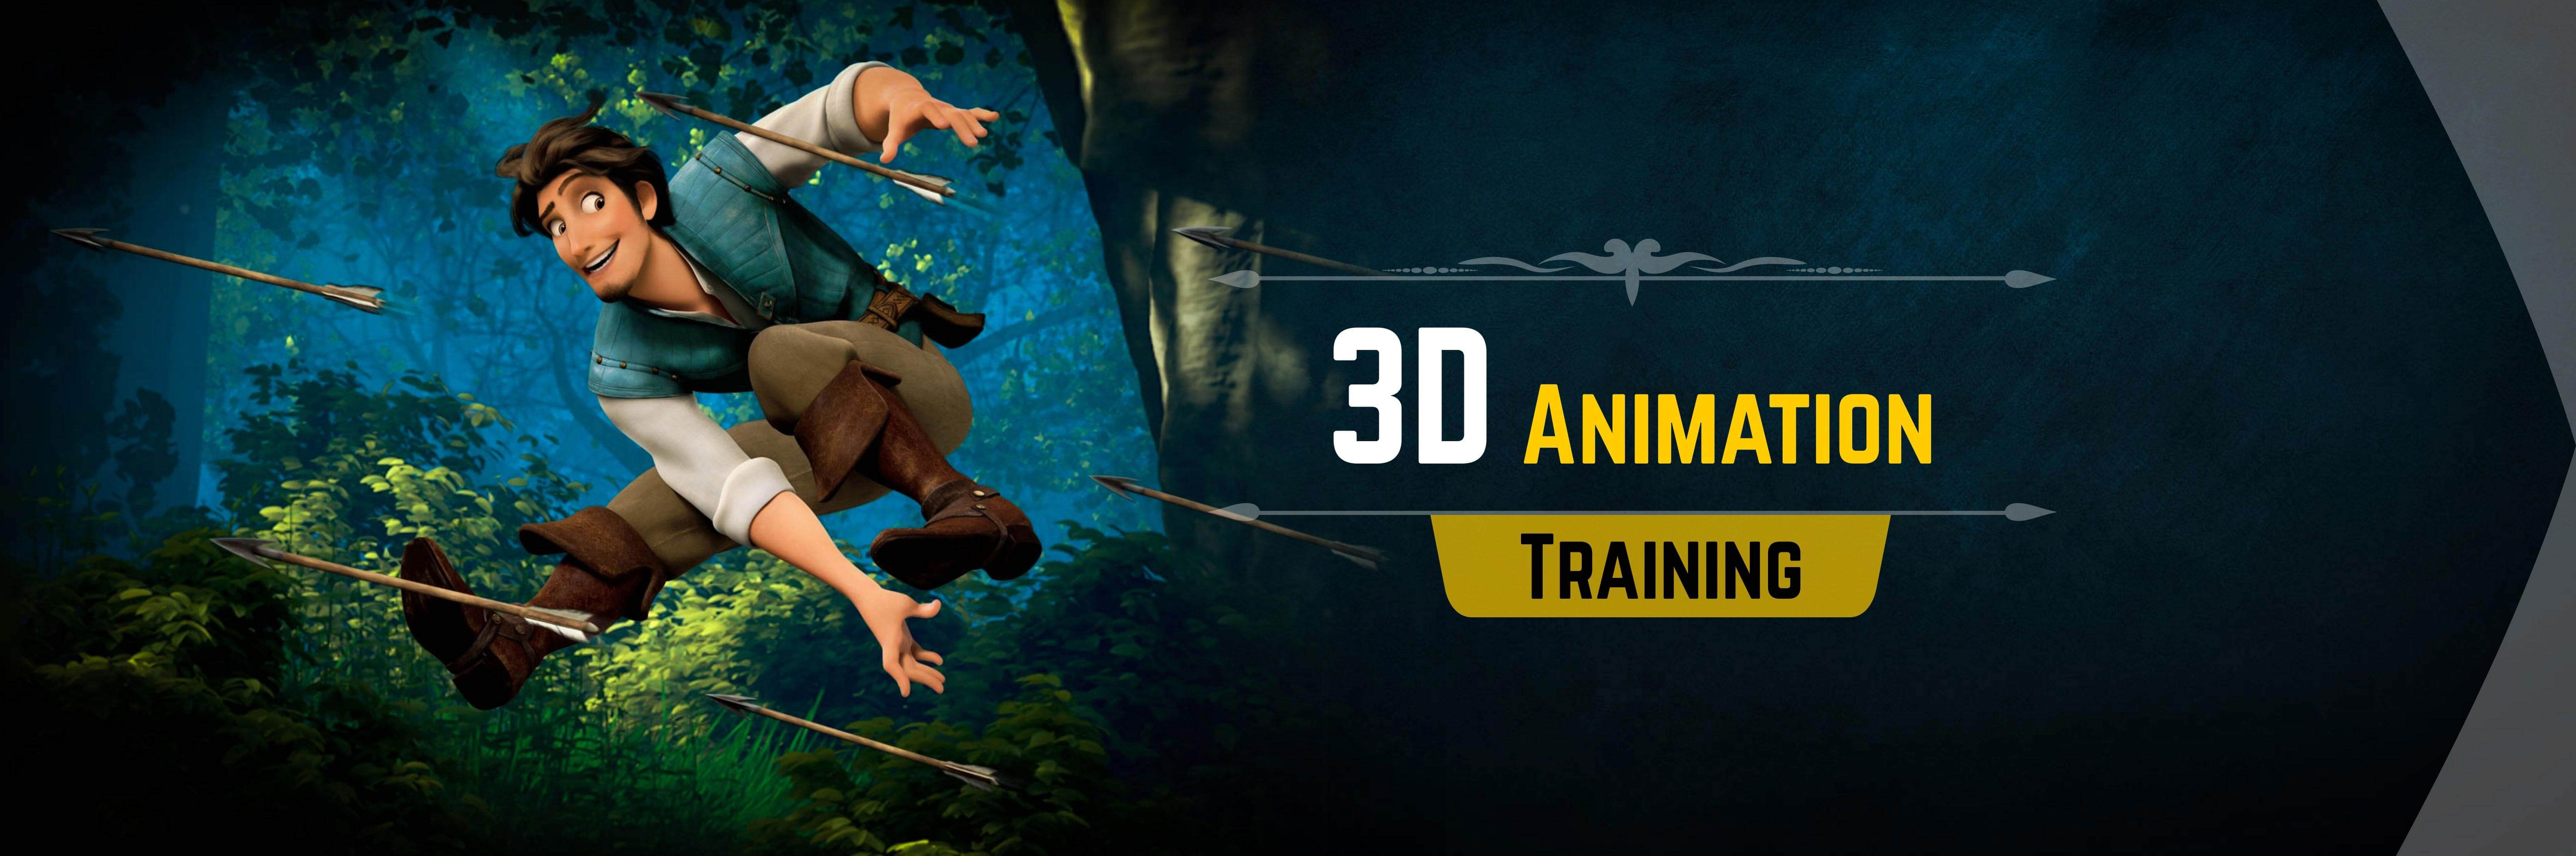 3d animation courses in hyderabad, animation courses in hyderabad, animation institute in hyderabad